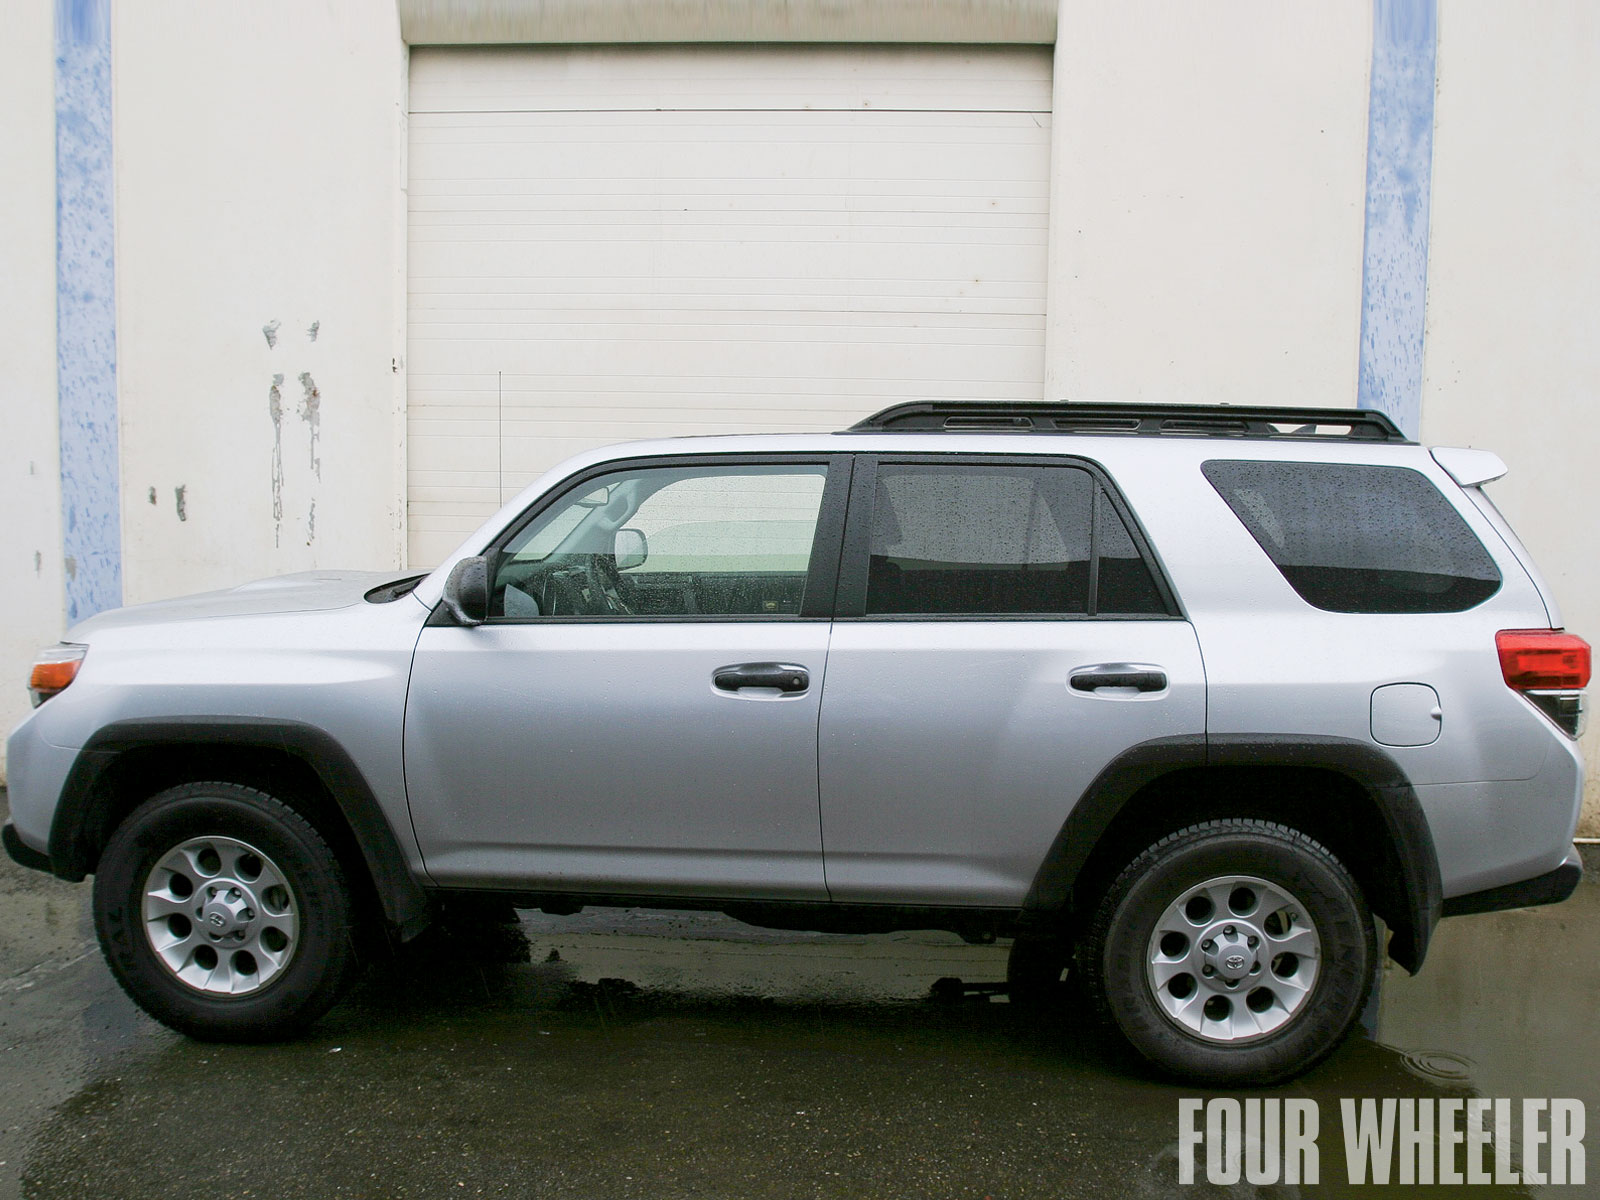 129 1102 02 o+129 1102 project 4runner backcountry part 2+driver side before shot